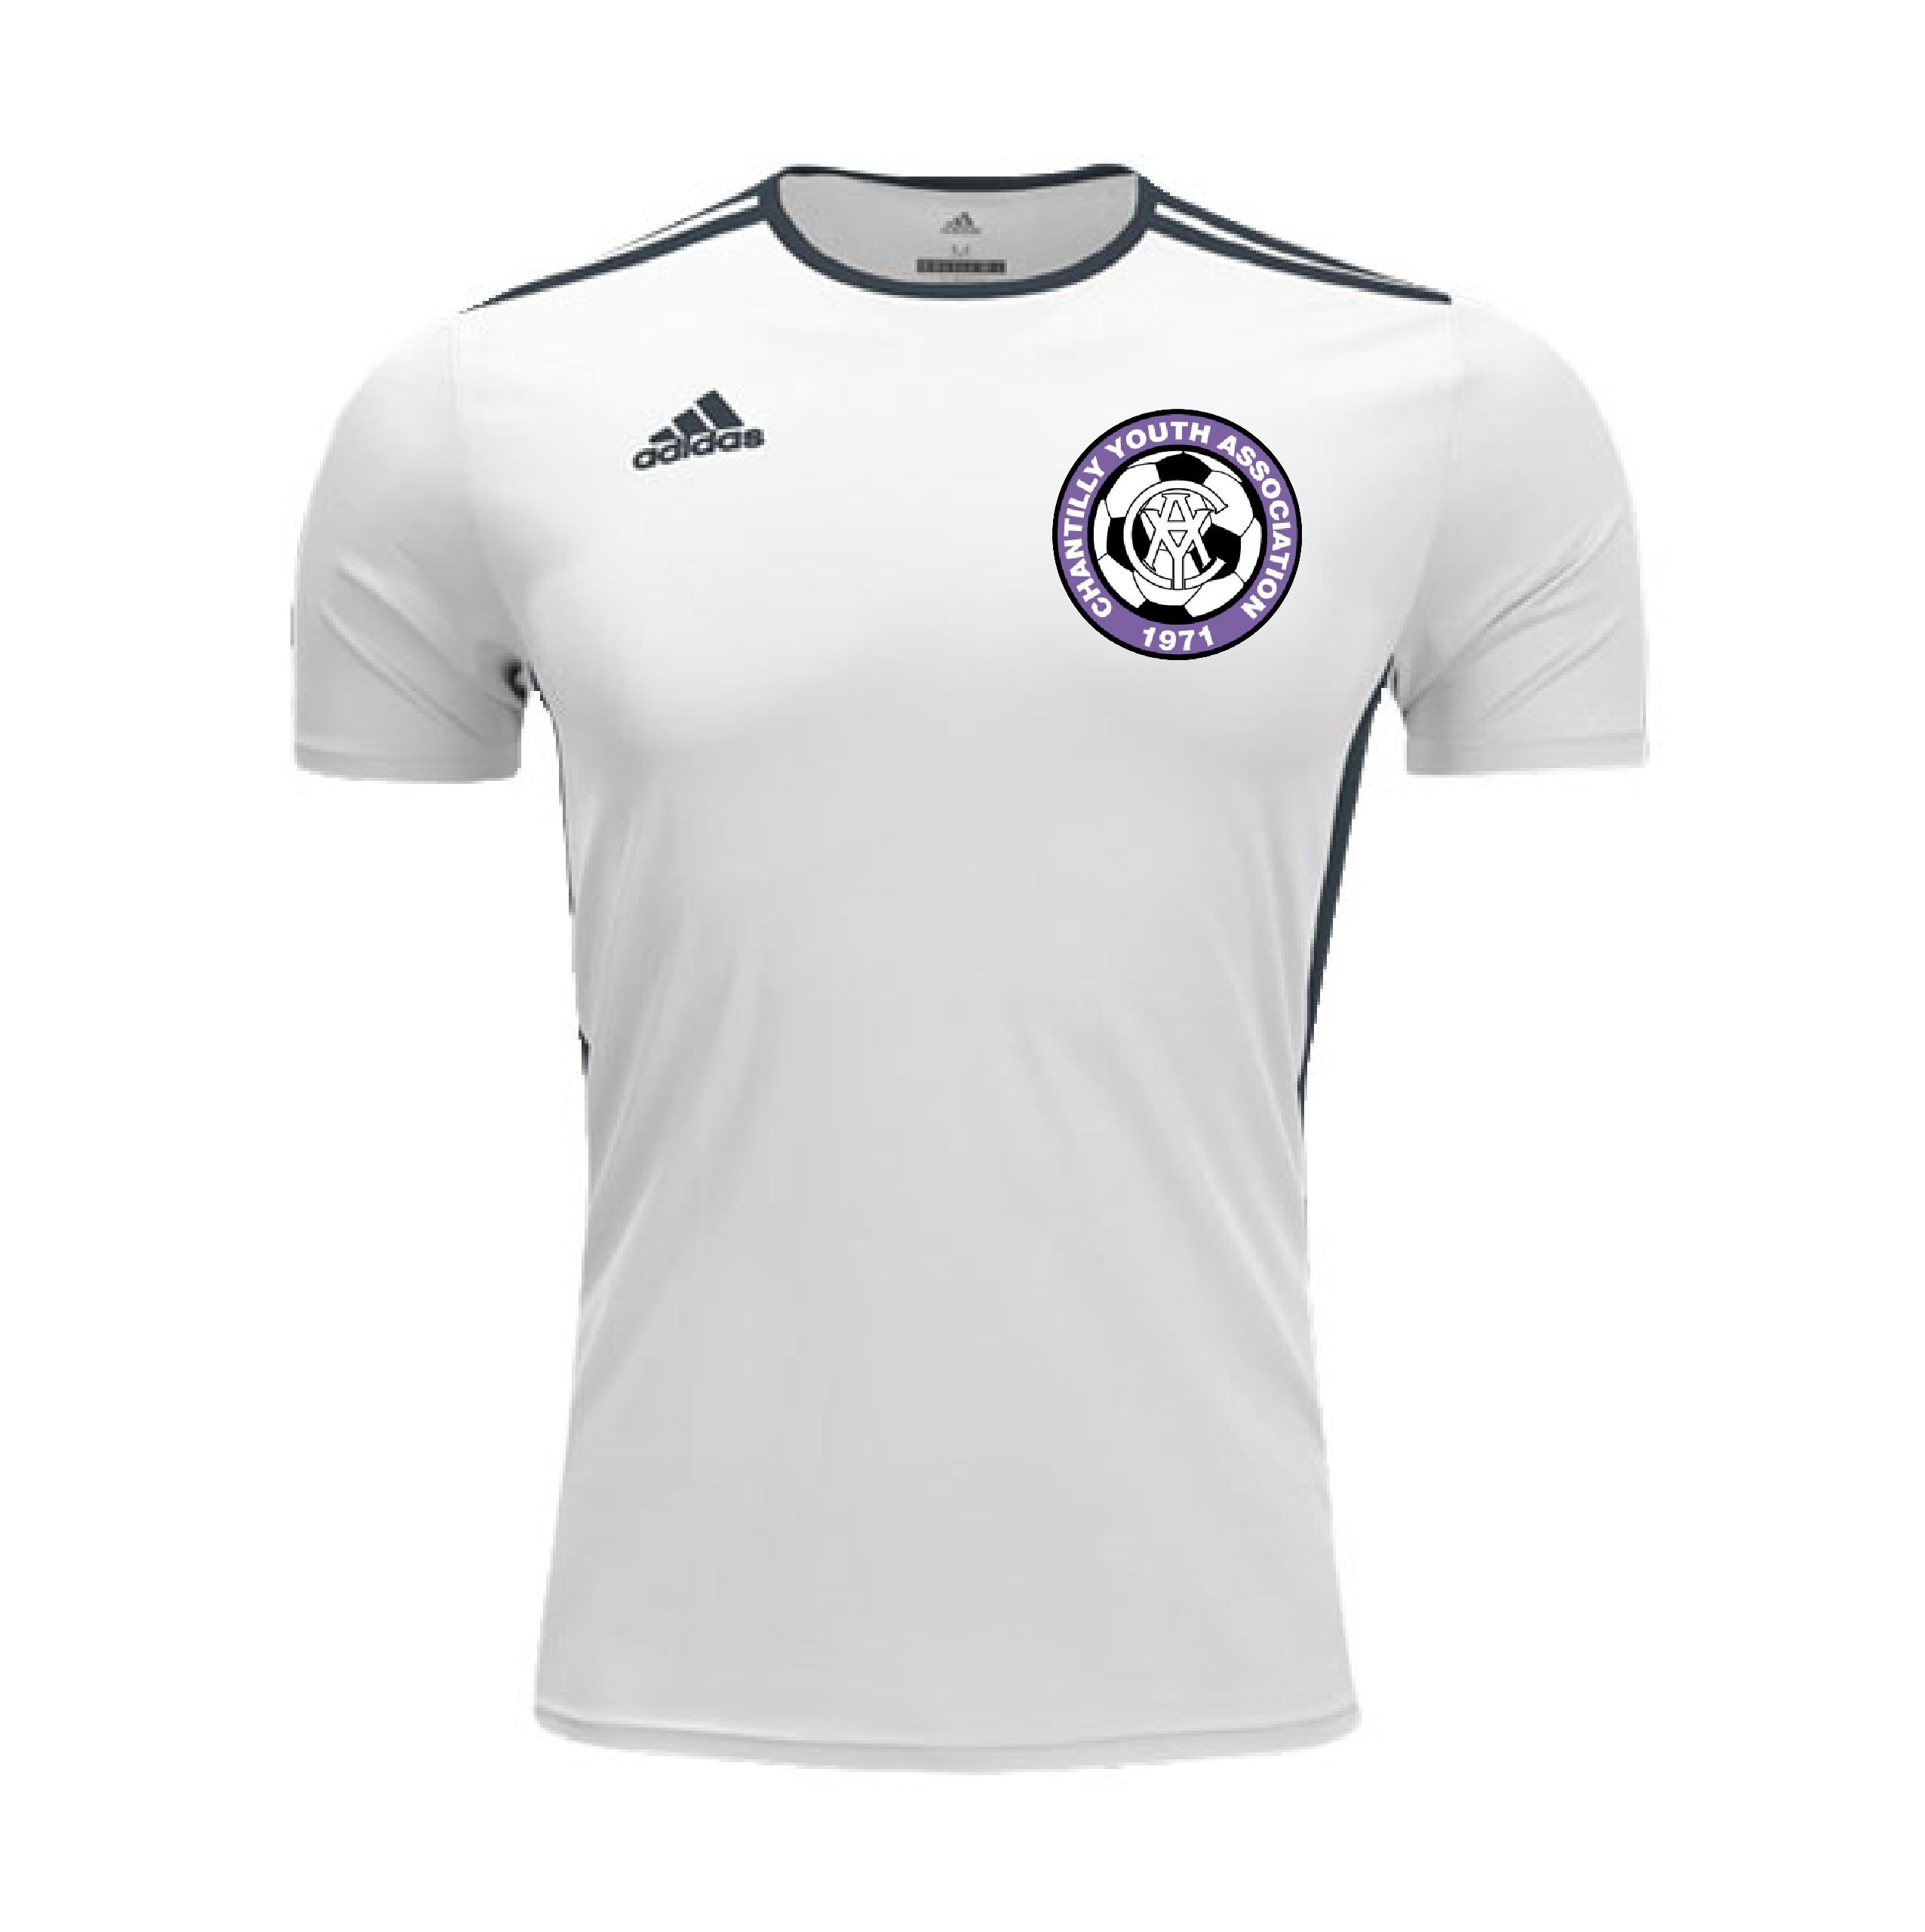 4fb4729af65 For any questions or concerns regarding Rec uniforms please reach out to  the Soccer Post directly: